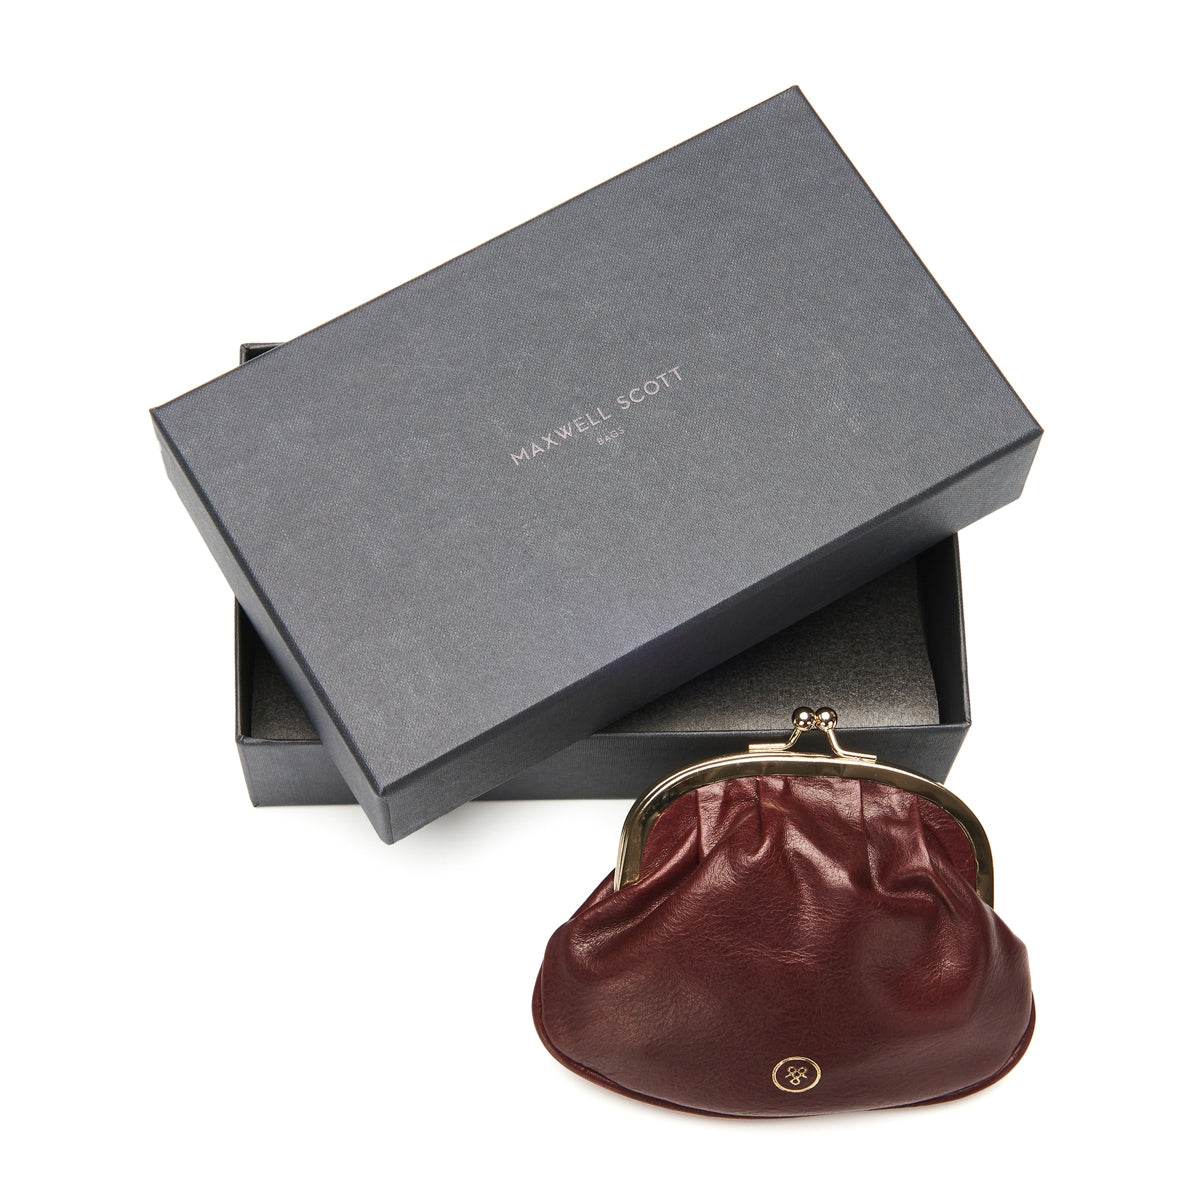 Image 6 of the Wine Leather Ball Clasp Coin Purse for Ladies